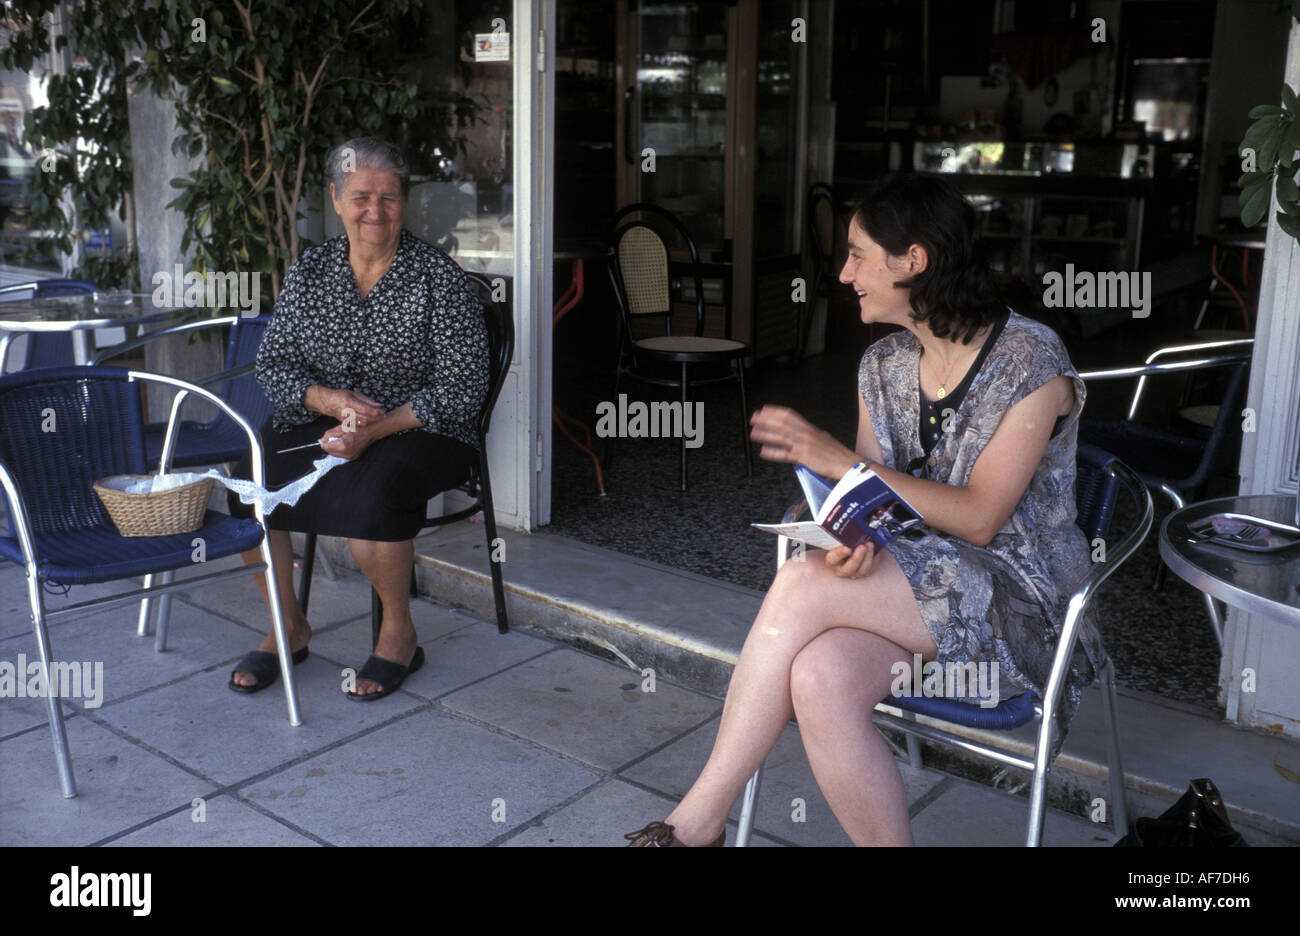 Tourist Visitor to Crete practices her Greek language with a local who is lace making in a Cafe Southern Crete Greece - Stock Image